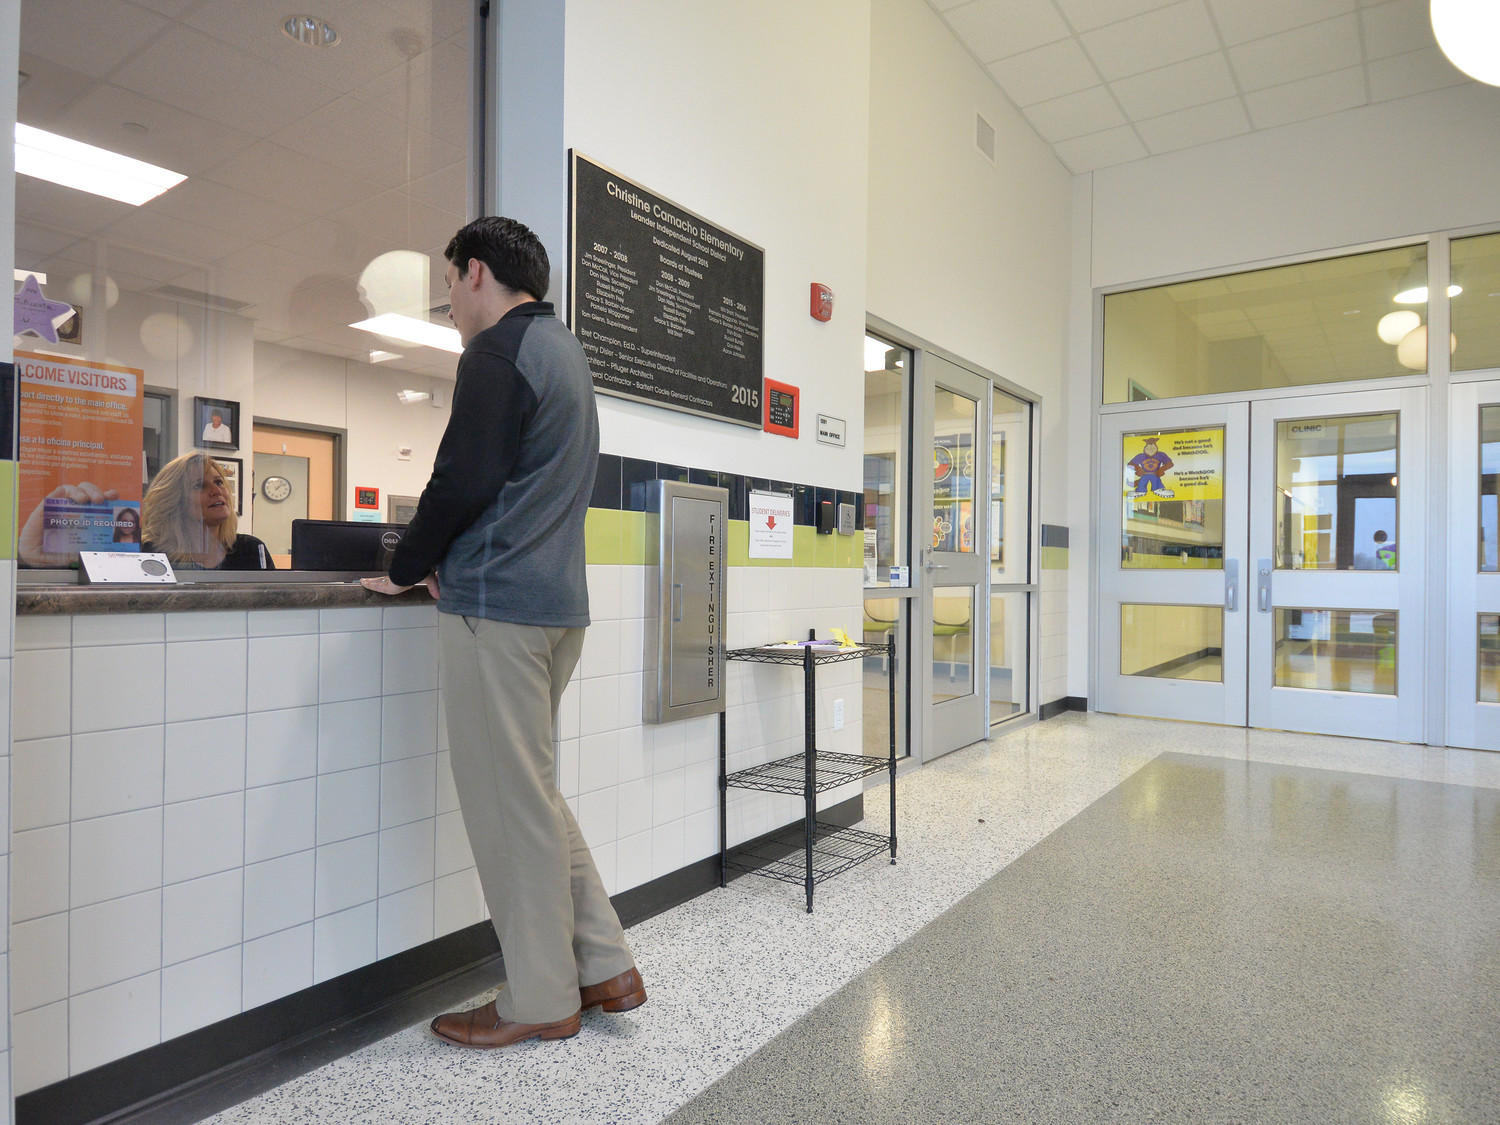 Visitors to LISD elementary schools must enter through secure vestibules forcing them to check in at the main office and provide their driver's license which is scanned and checked against a sex-offender database.